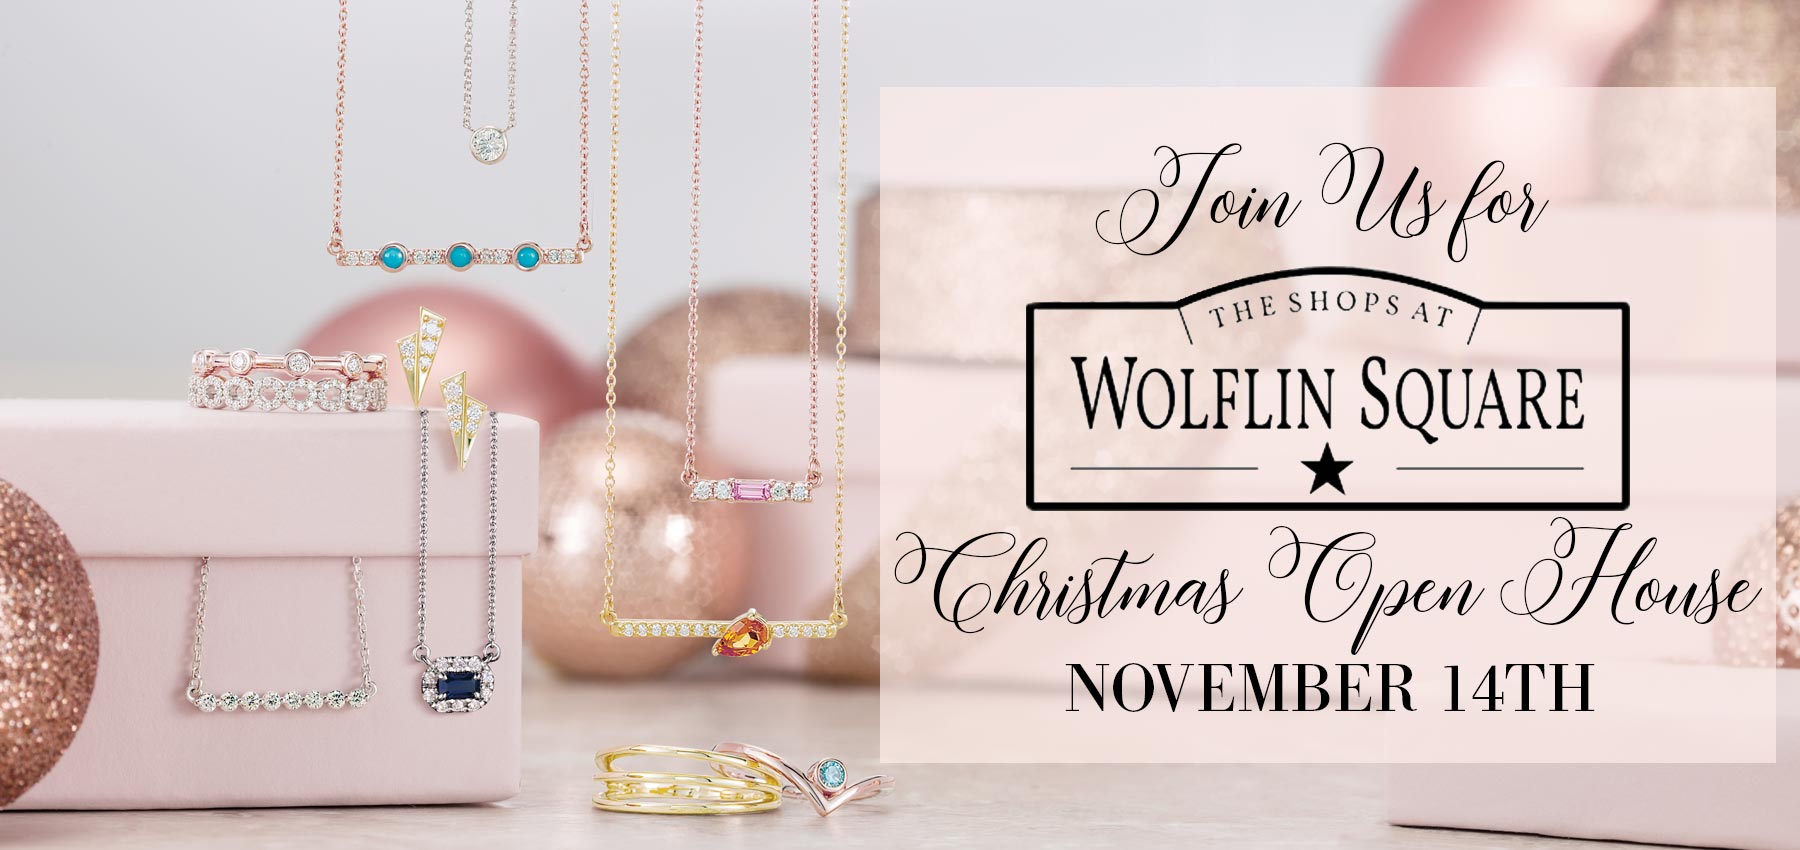 Wolflin Square Christmas Open House